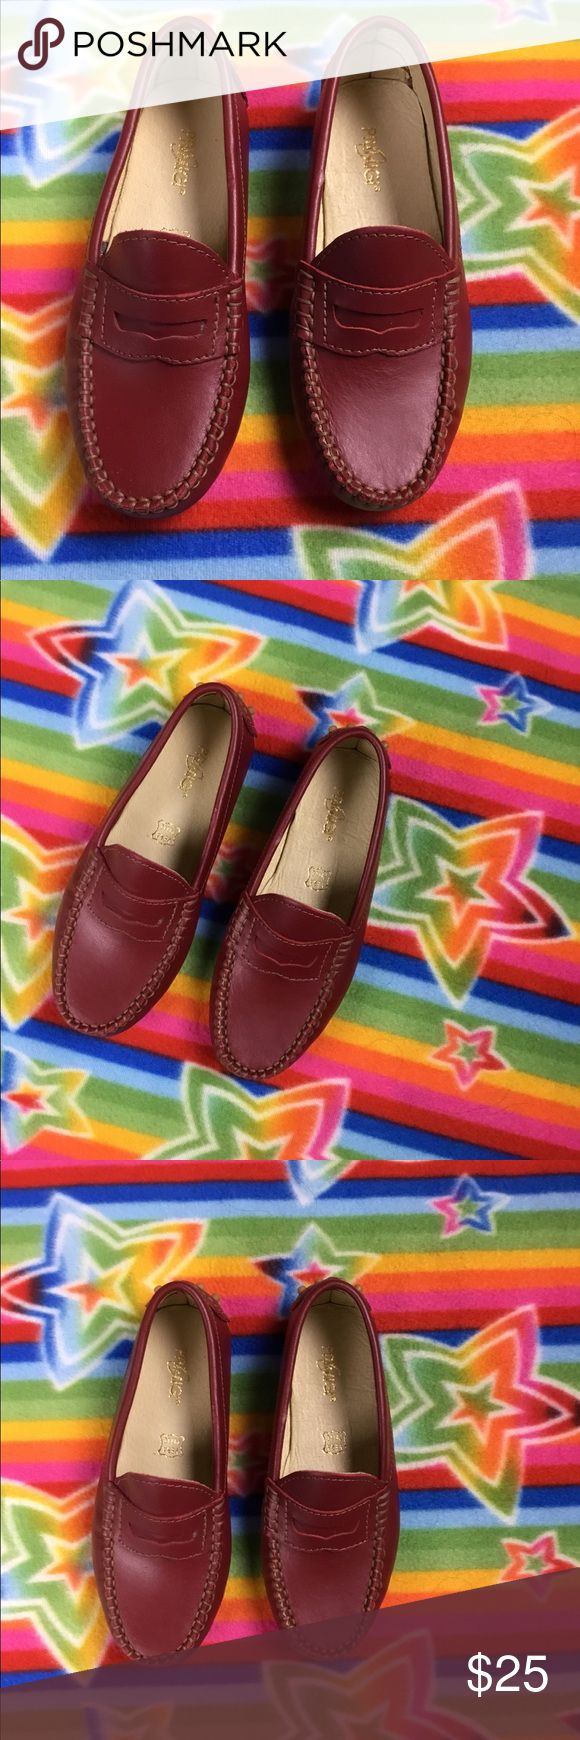 Primigi  Red Leather loafers New Condition Big Kids loafers  My son is size 13 narrow and they fit  Red Leather/Tan detail Primigi Shoes Moccasins